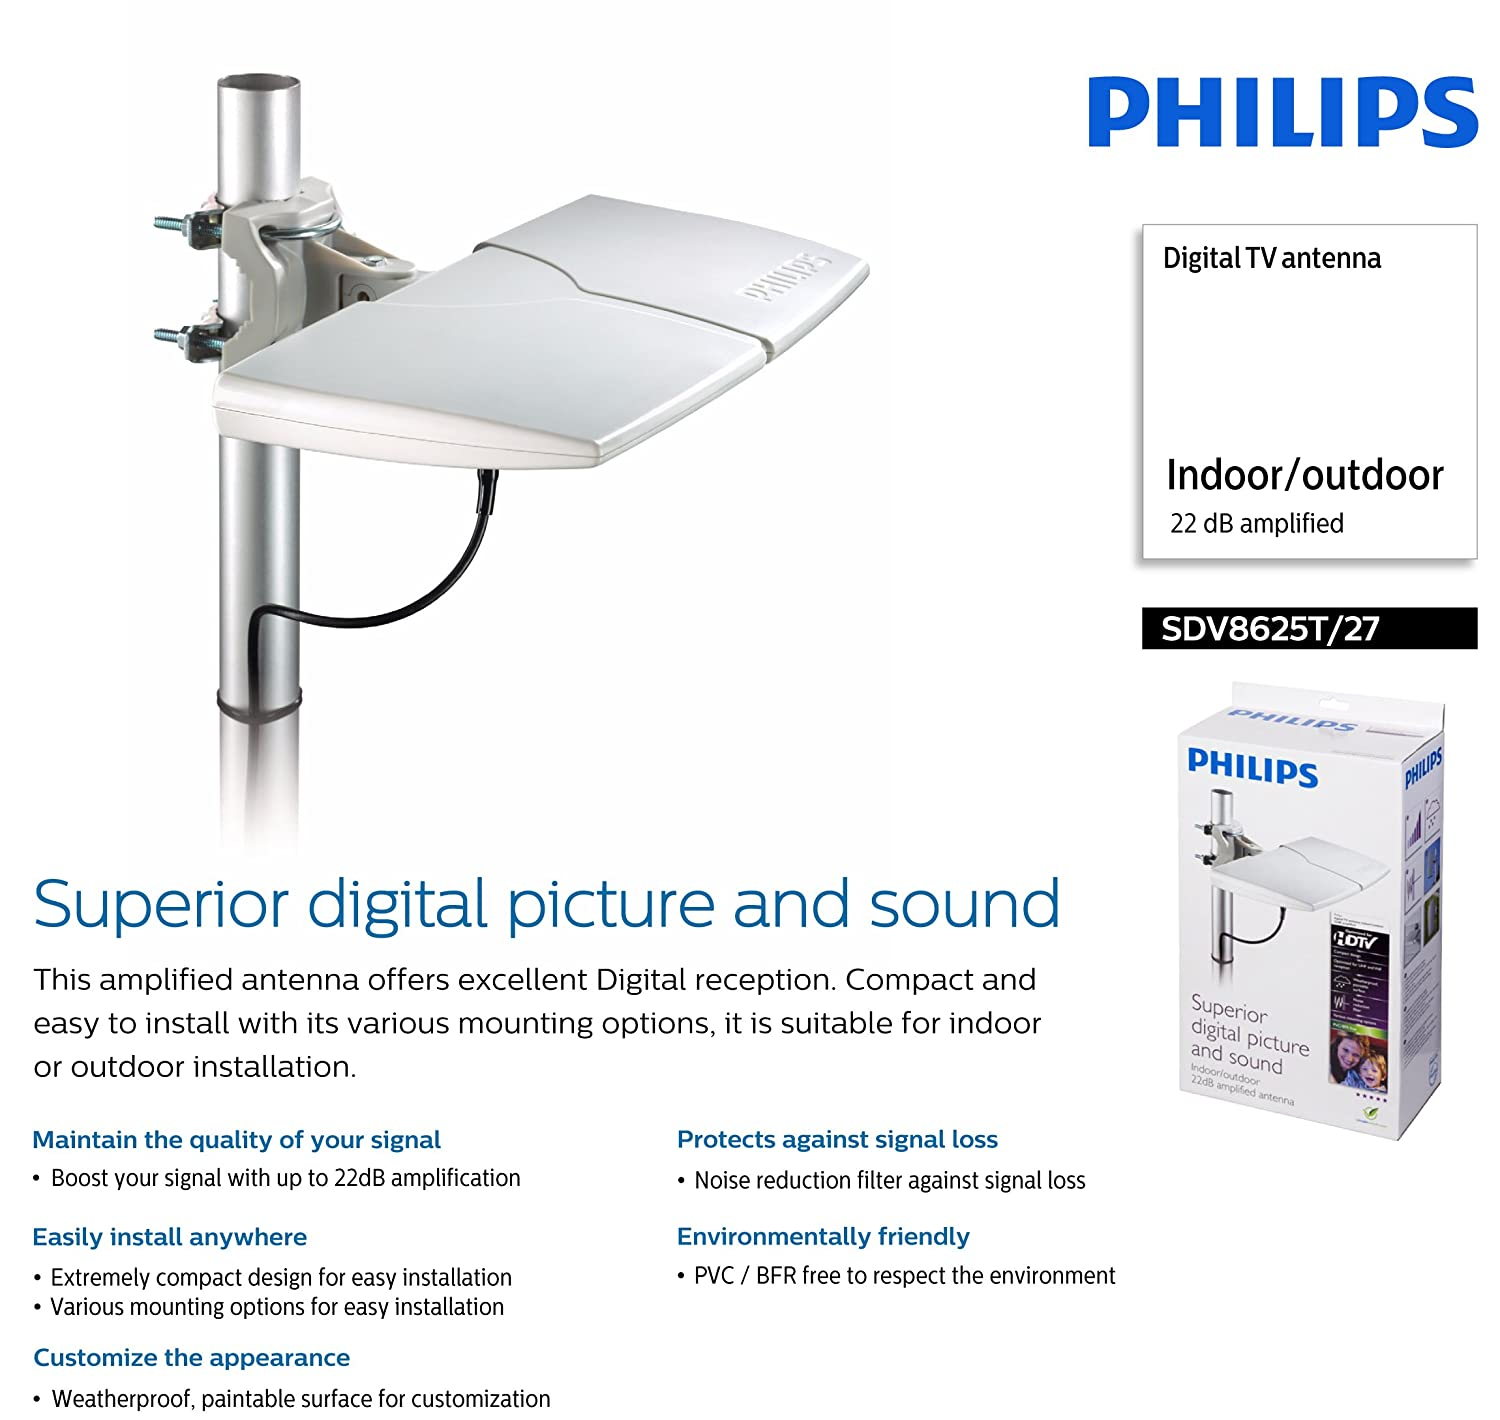 Amazon.com: Philips SDV8625T/27 Indoor/outdoor 22 dB amplified Digital TV antenna: Home Audio & Theater